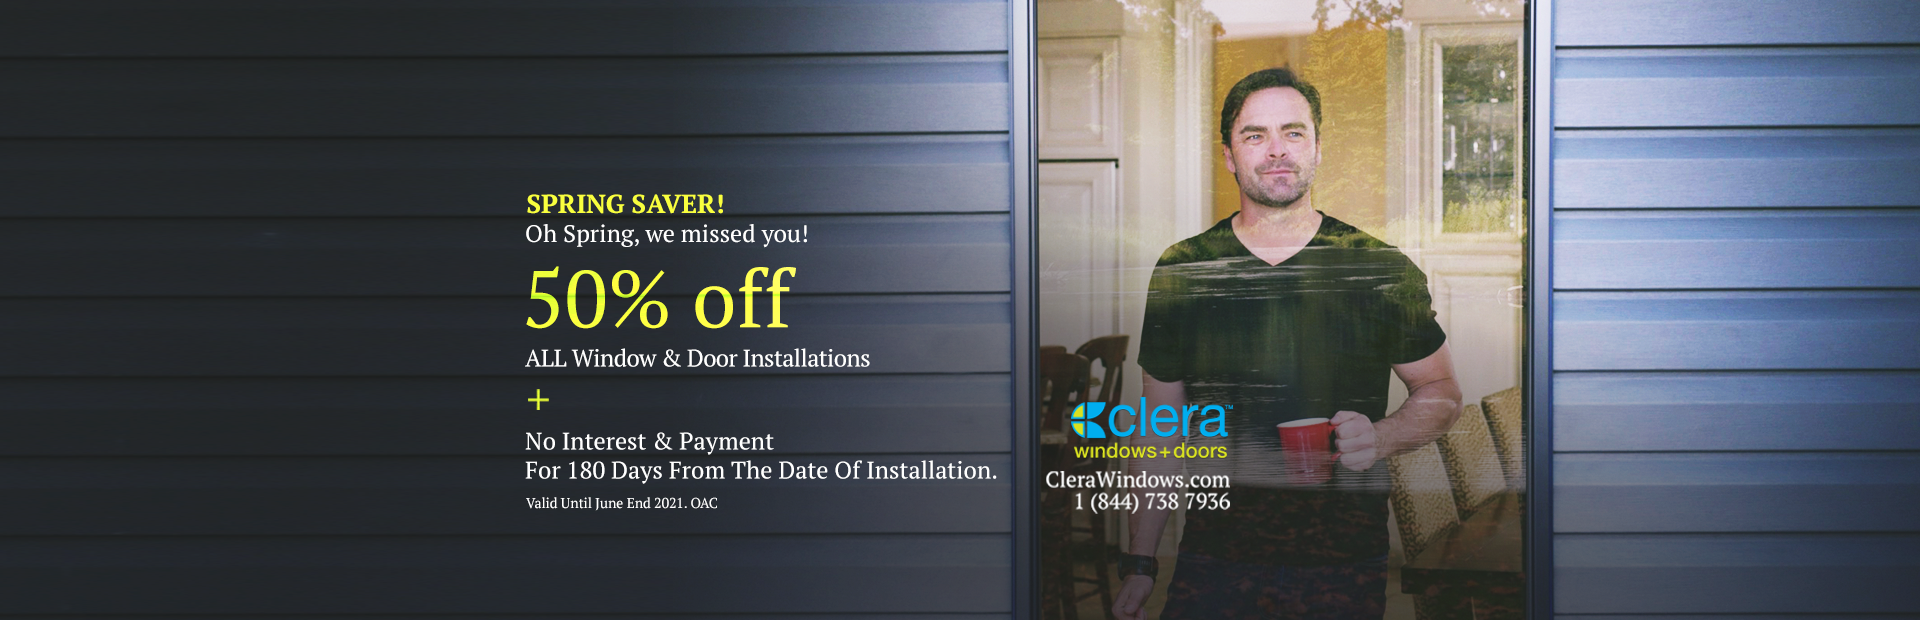 Spring Sale Promo Home Page